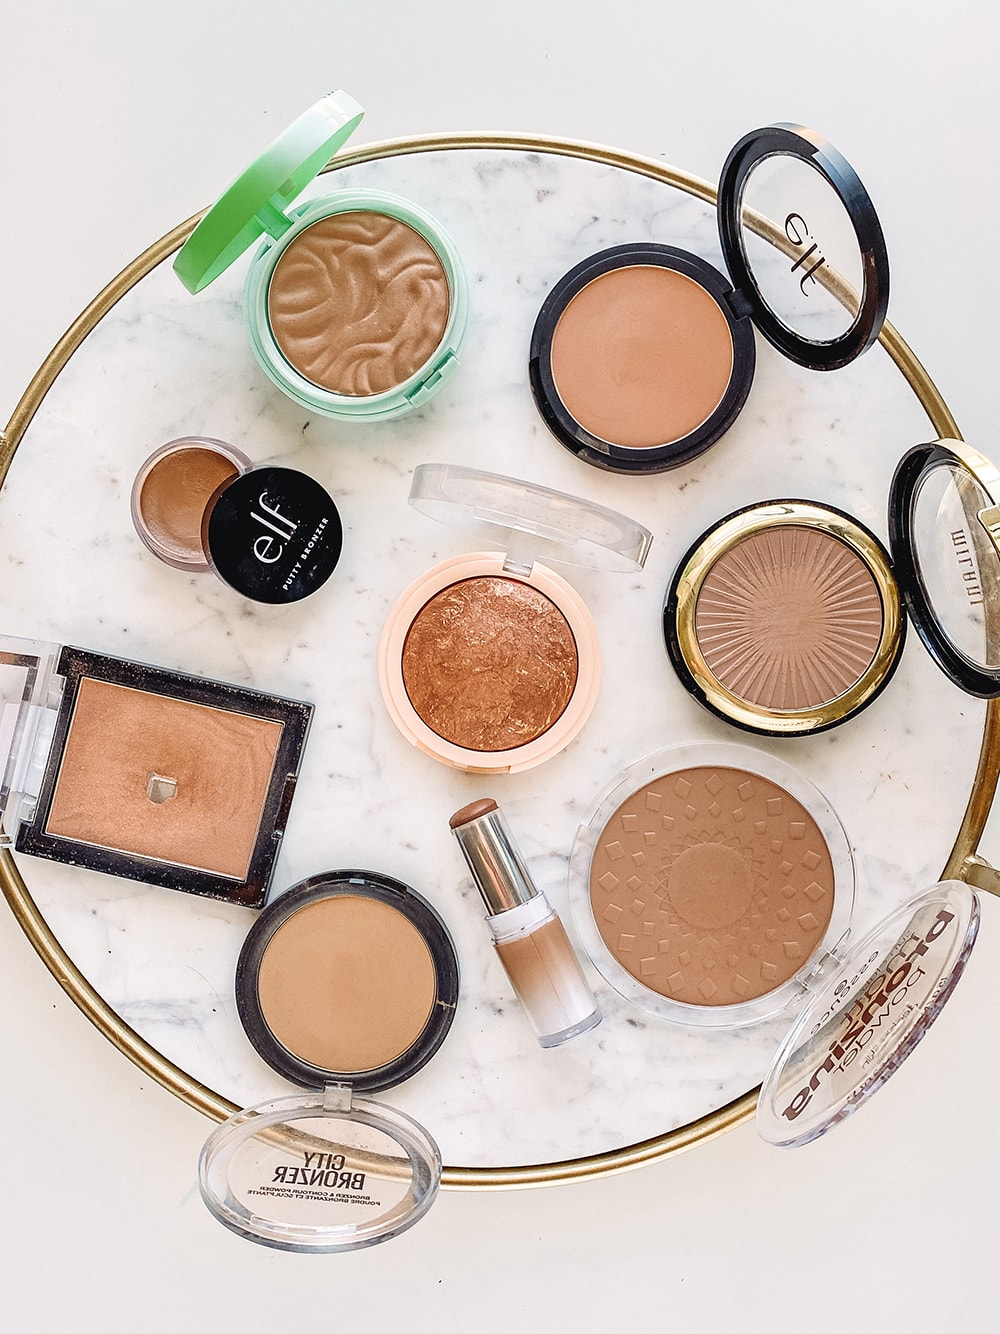 Houston beauty blogger Meg O. shares the best drugstore bronzers for sun kissed skin. This list includes different formulas and finishes that will work for all skin tones and types!